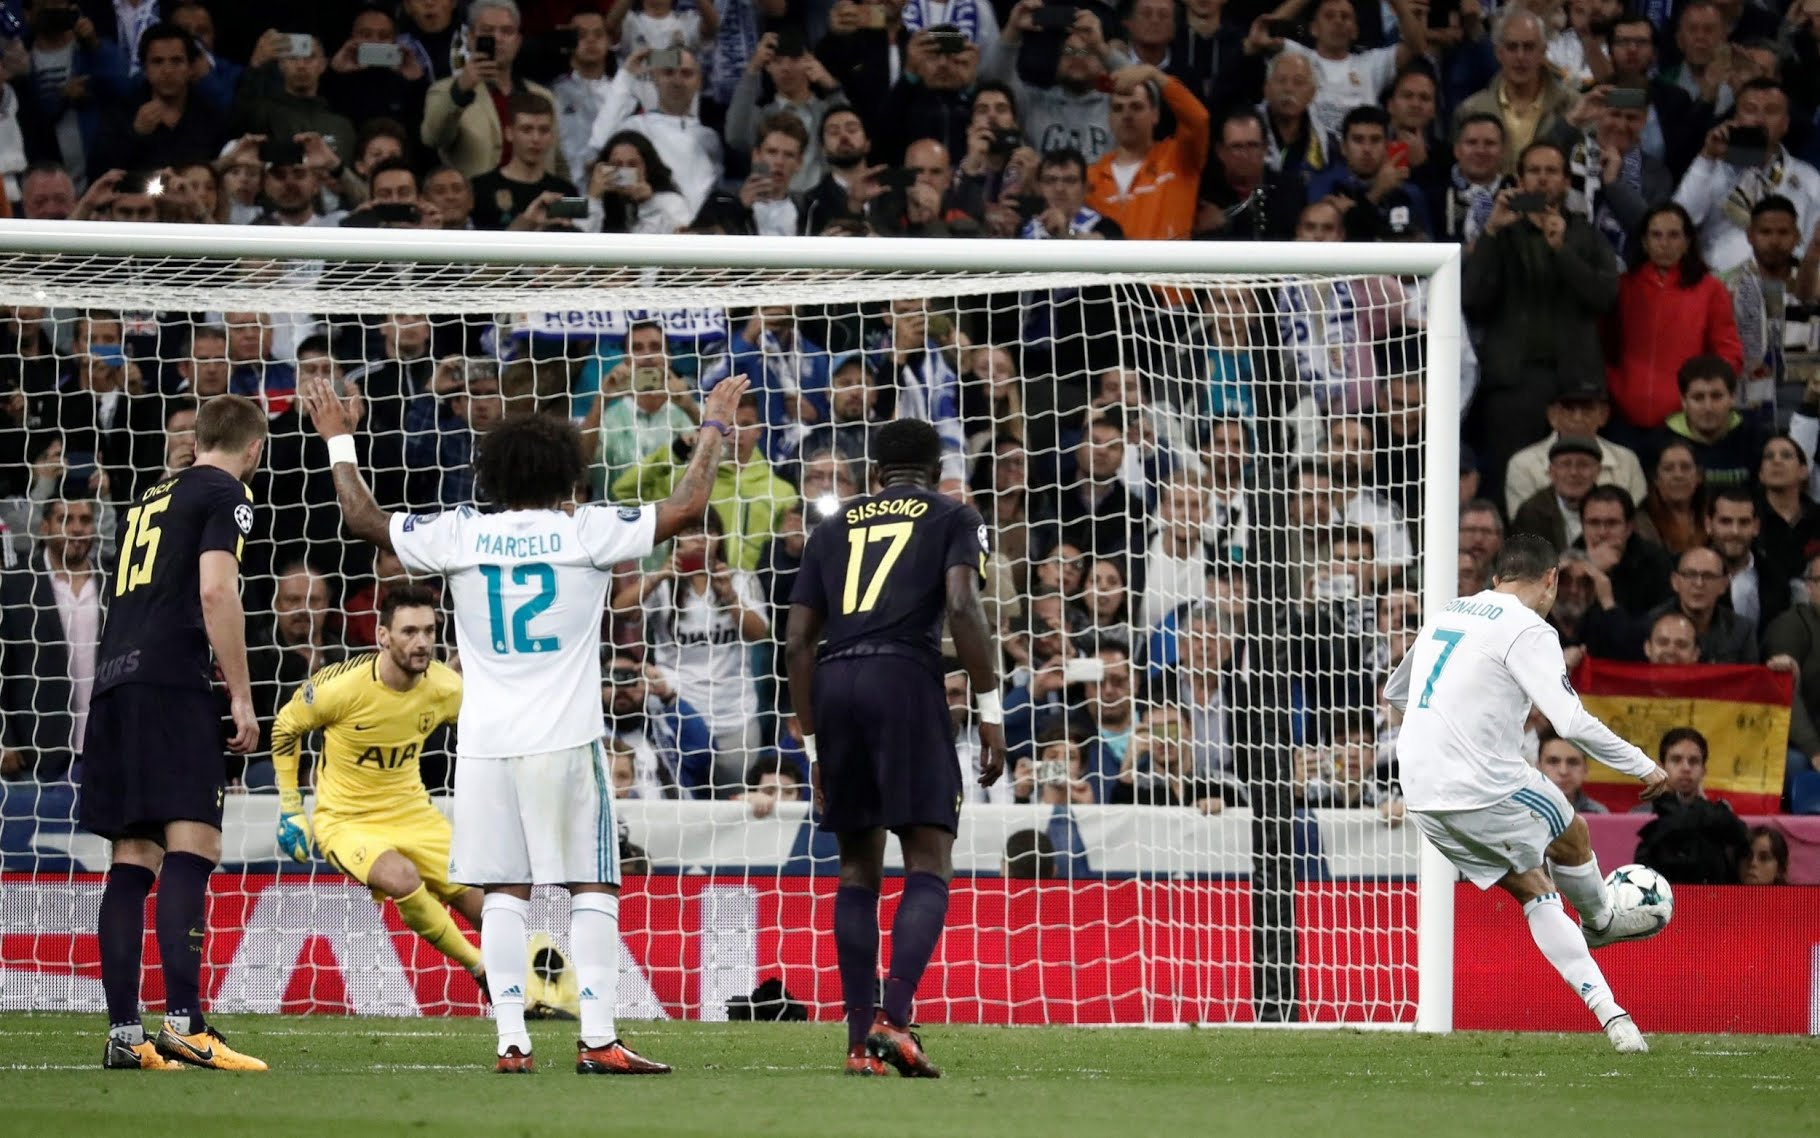 Cristiano Ronaldo scores from the penalty spot